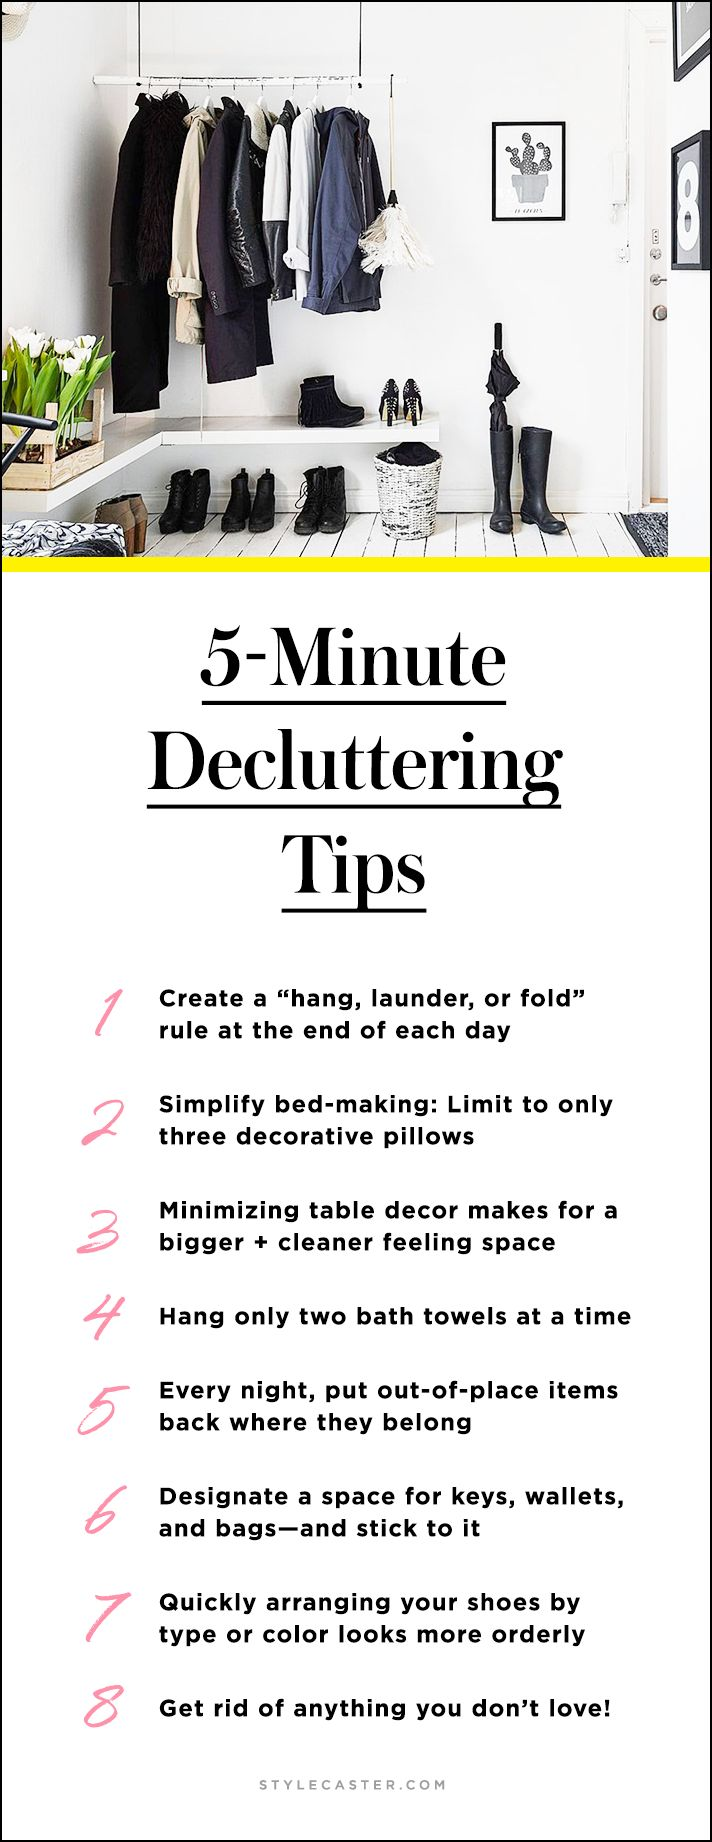 Cheat Sheet: 5-Minute Decluttering Tips for a Clutter-Free Home | How to quickly clean + simplify your space—save this handy list as a reminder | @stylecaster